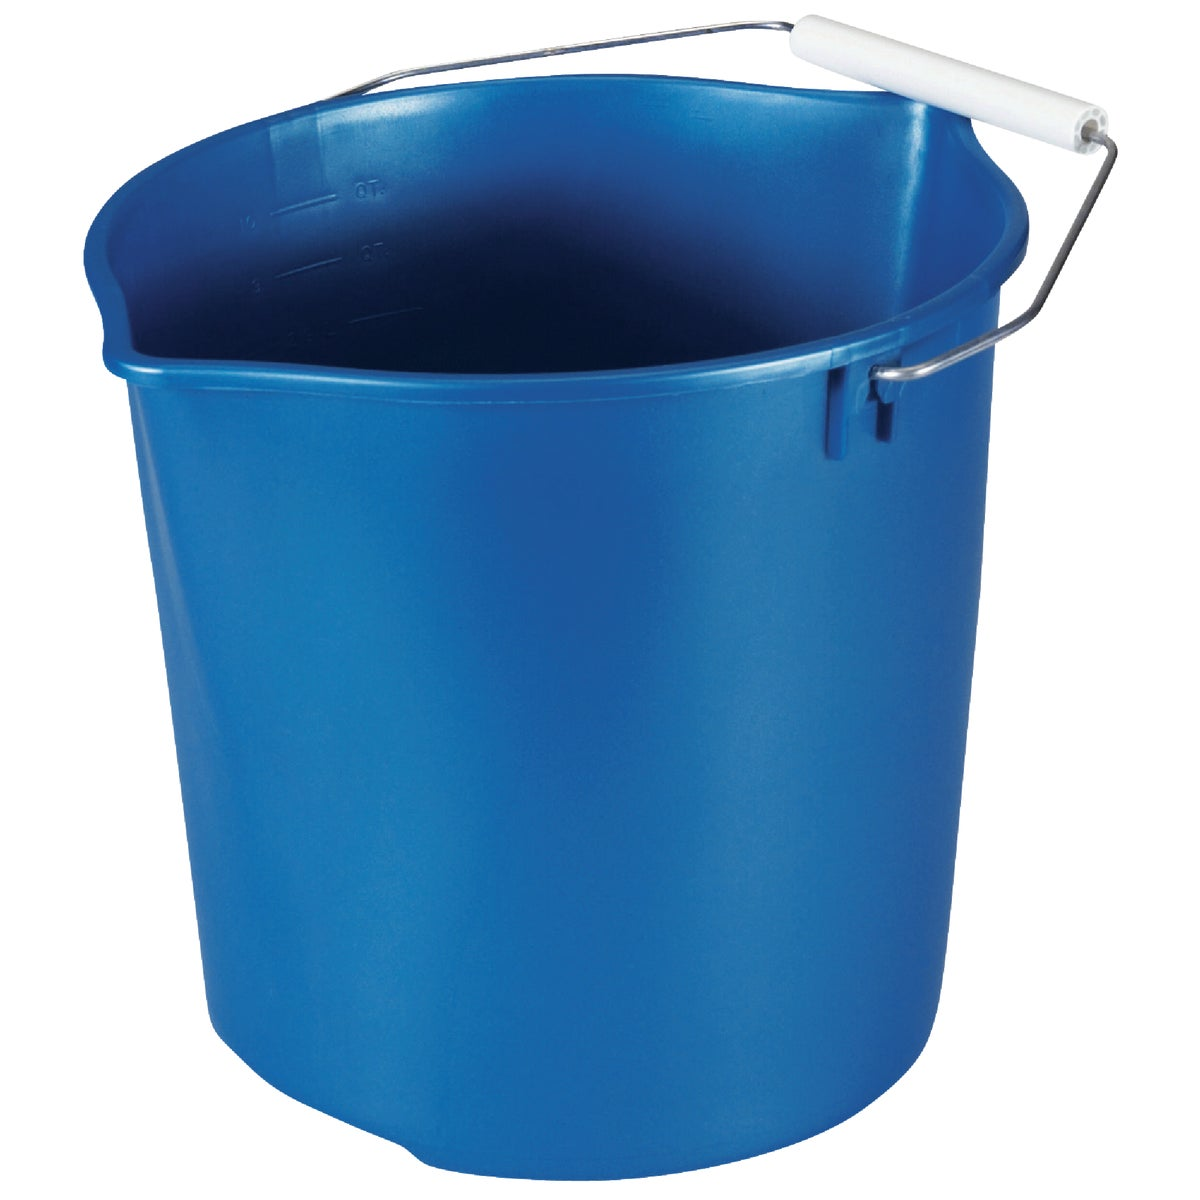 11QT BLUE BUCKET - FG2936TPROYBL by Rubbermaid Home